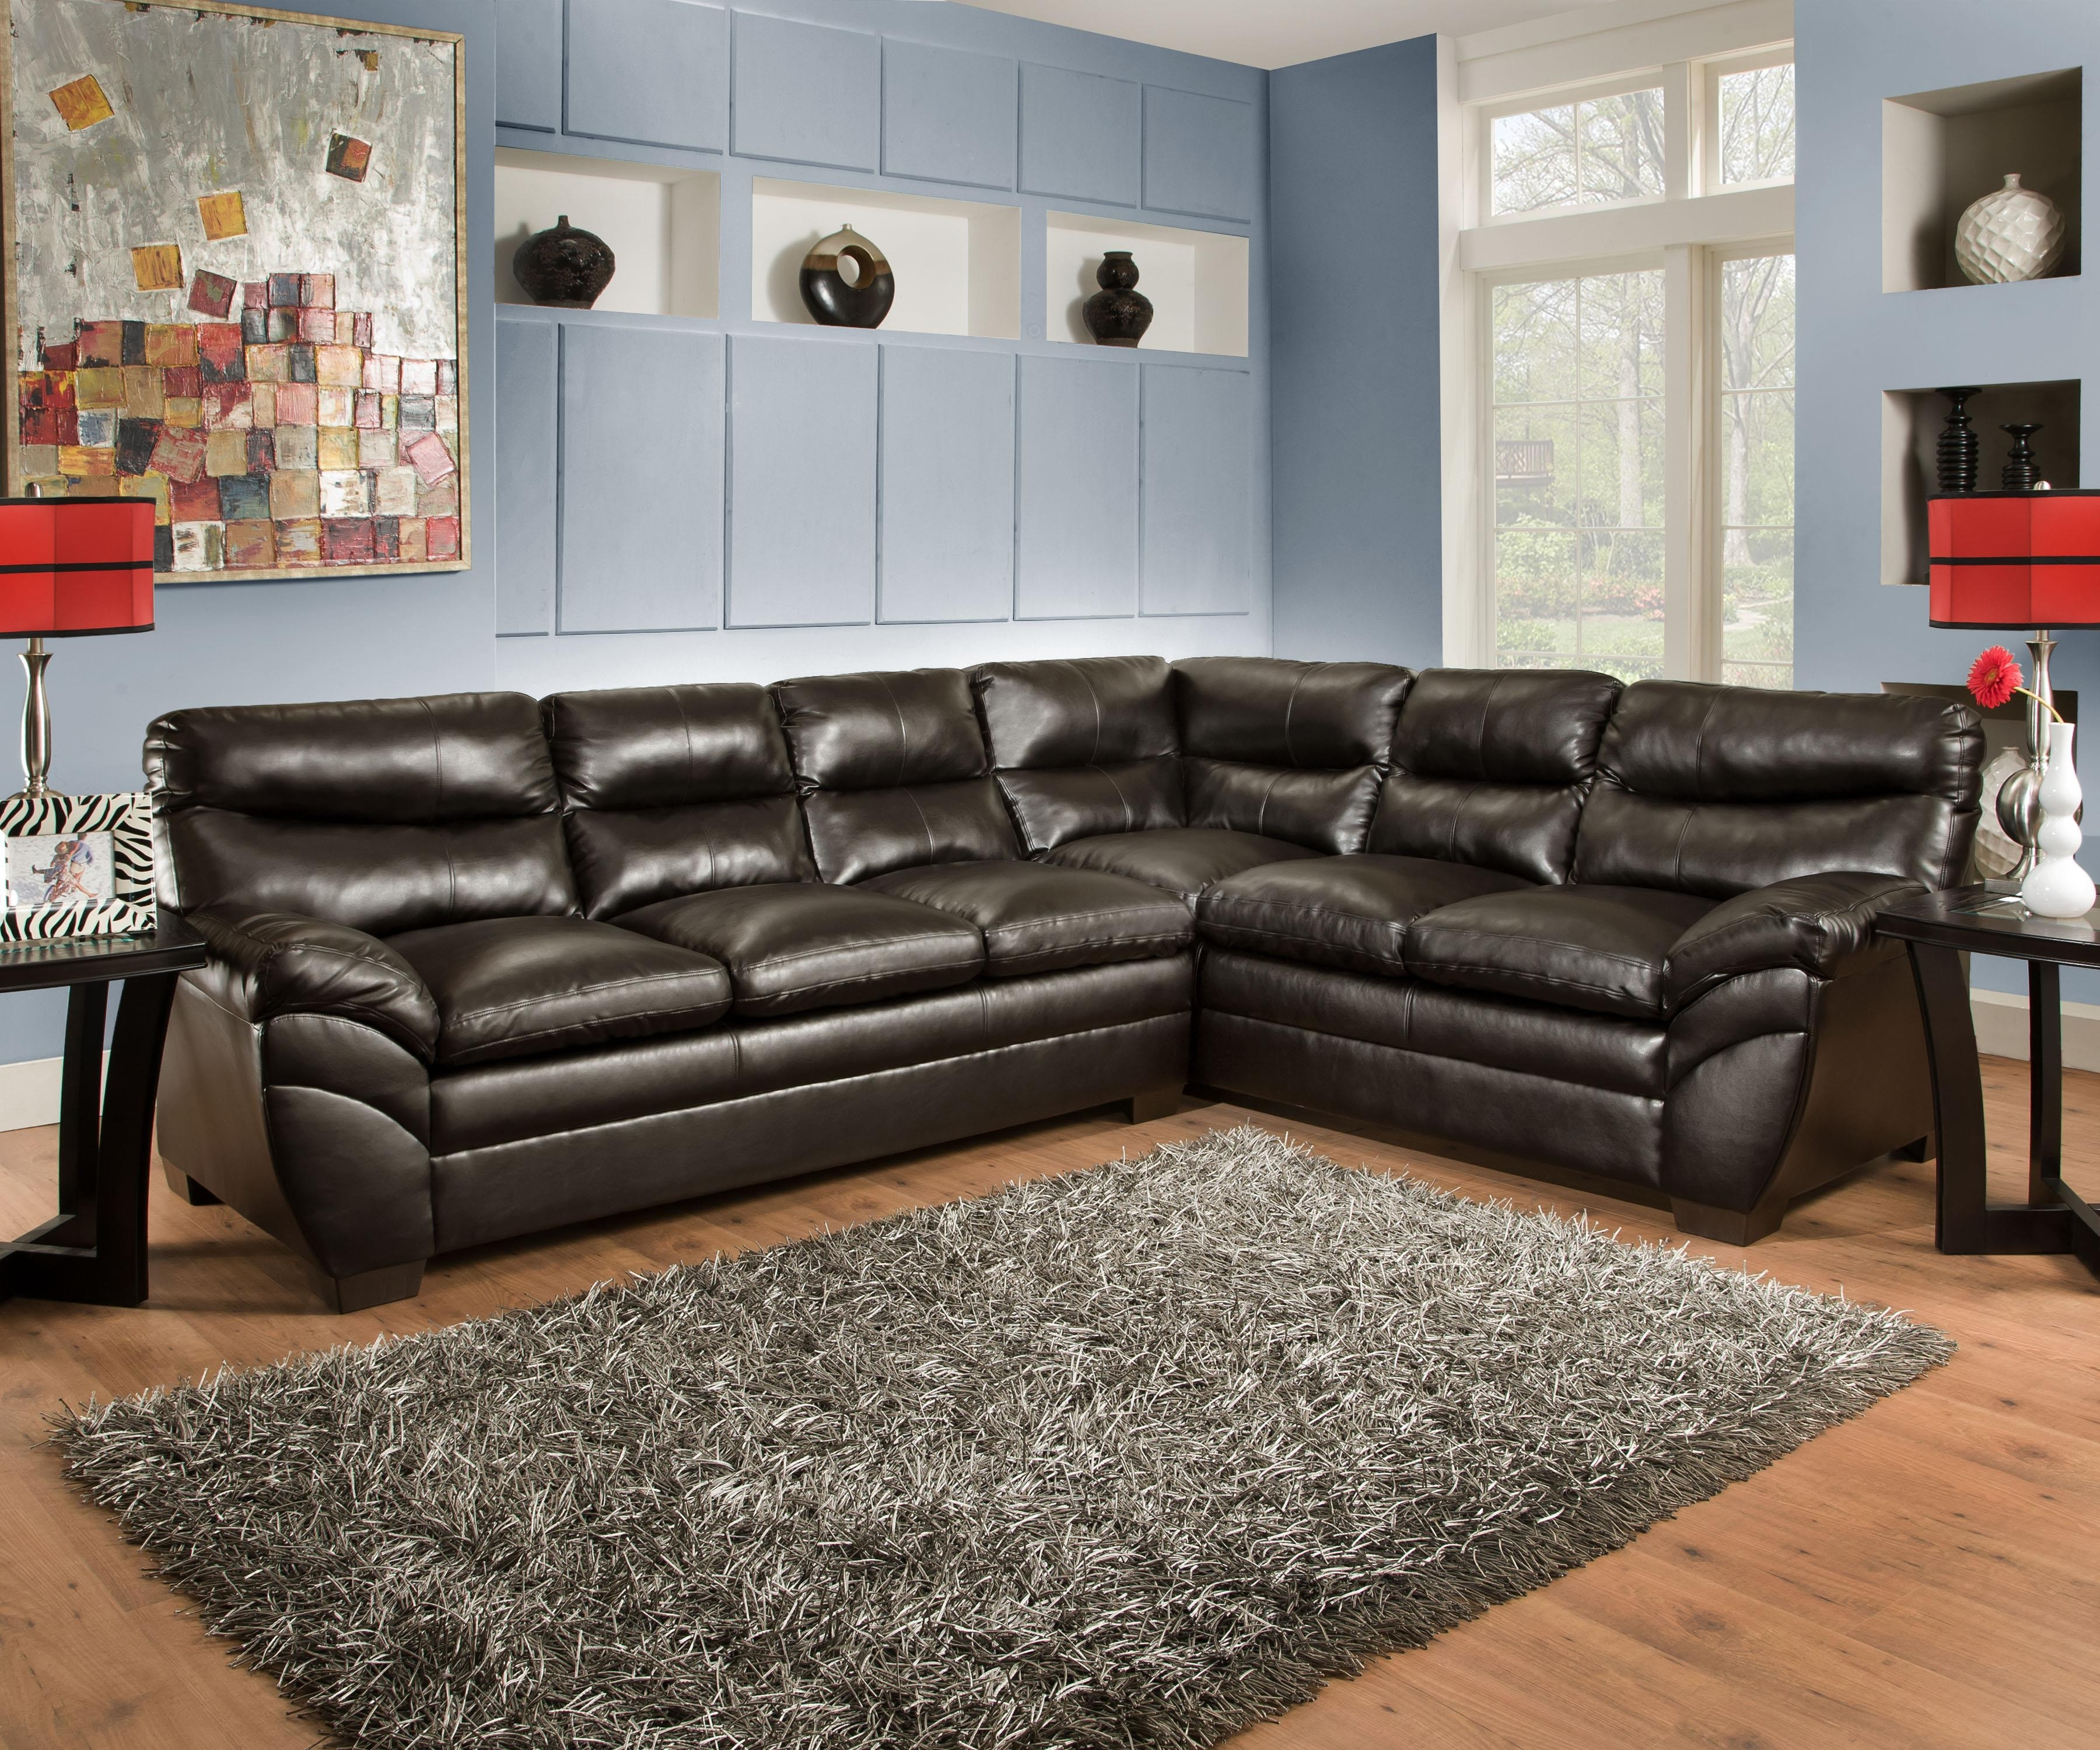 Phoenix Arizona Sectional Sofas Throughout Famous Best Modern Phoenix Arizona Craigslist Cars And Tru # (View 12 of 20)